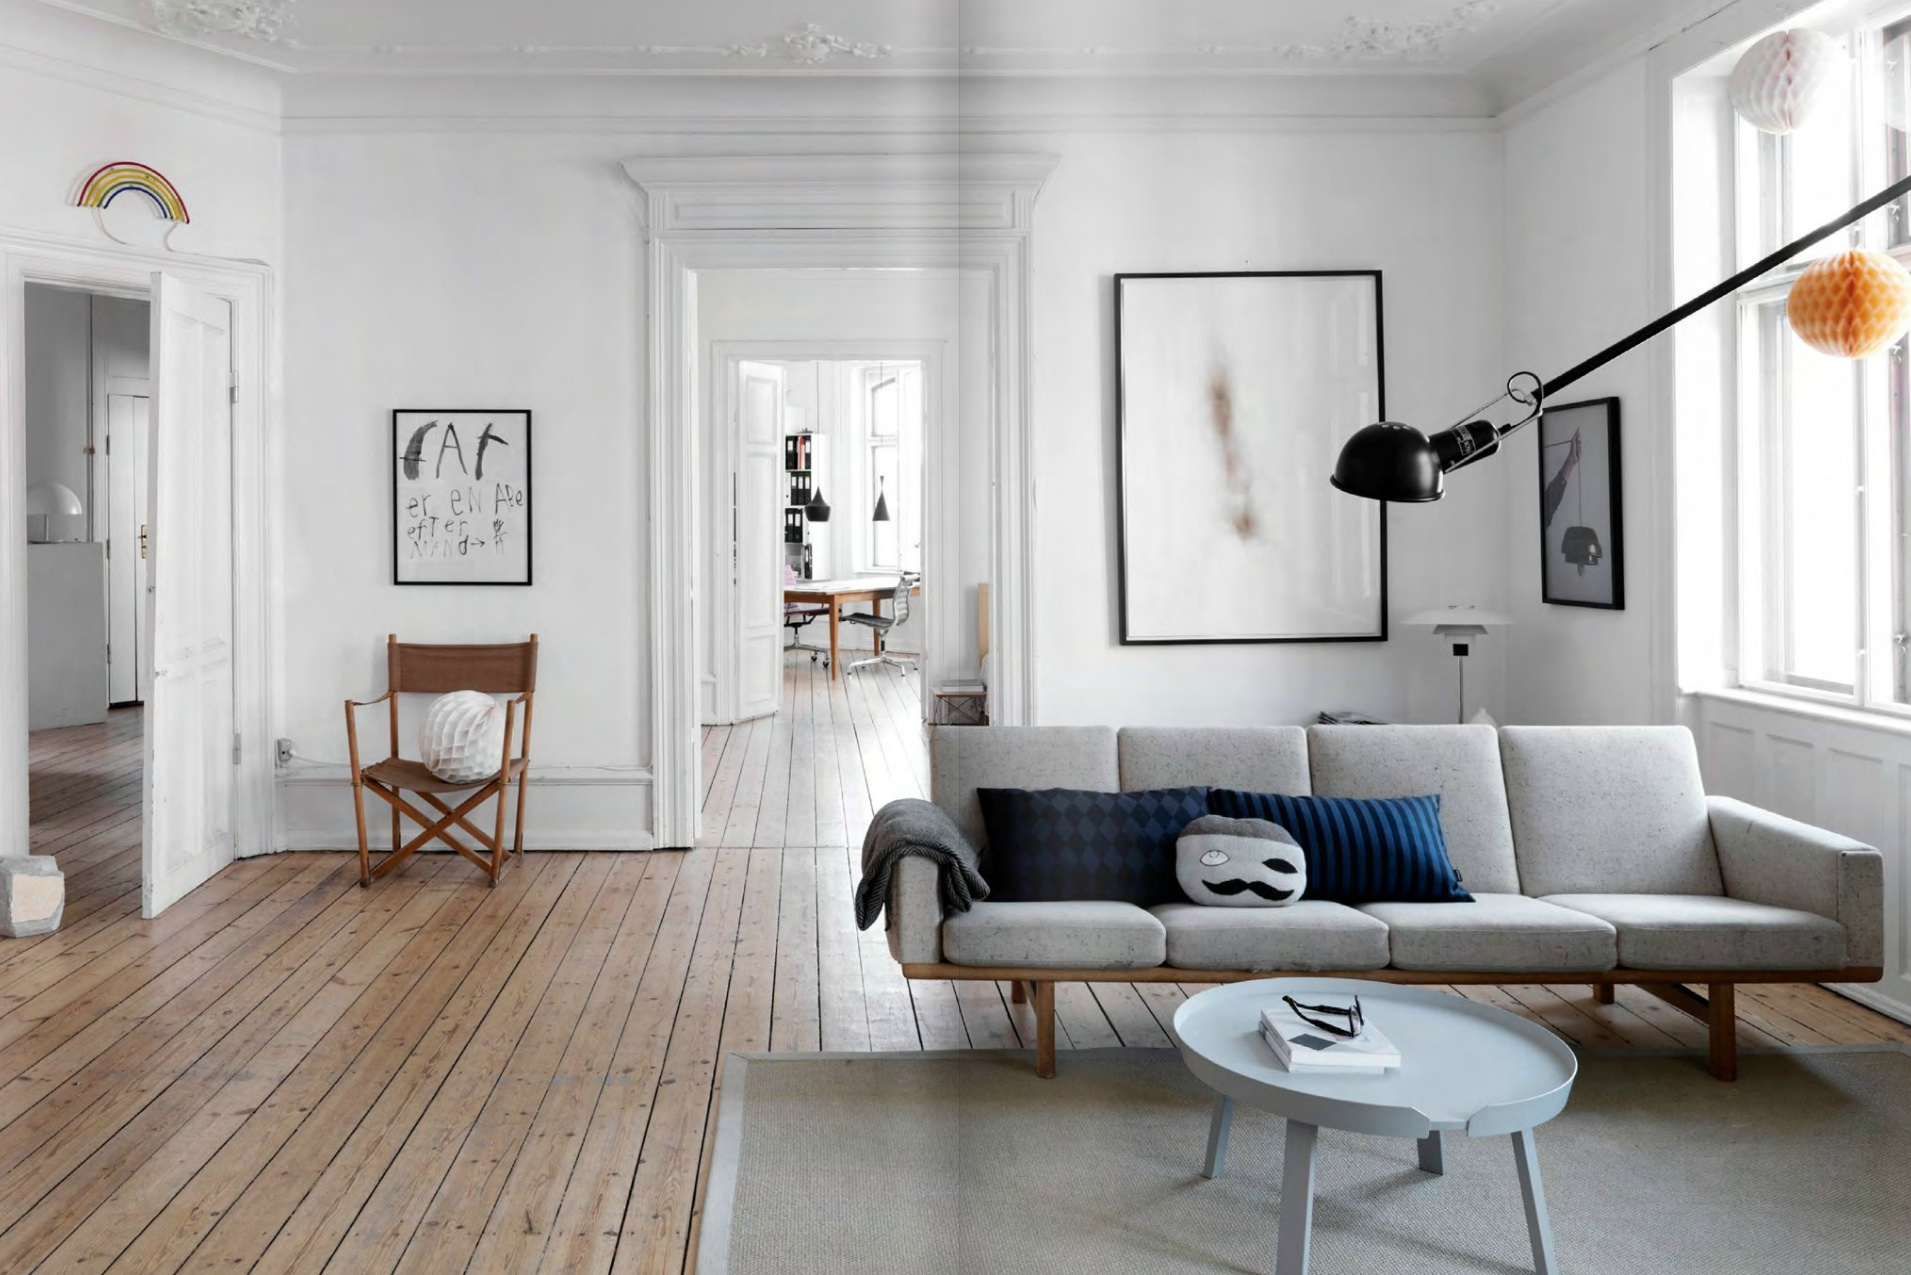 Scandinavian historical redesign dailyscandinavian for Scandinavian interior